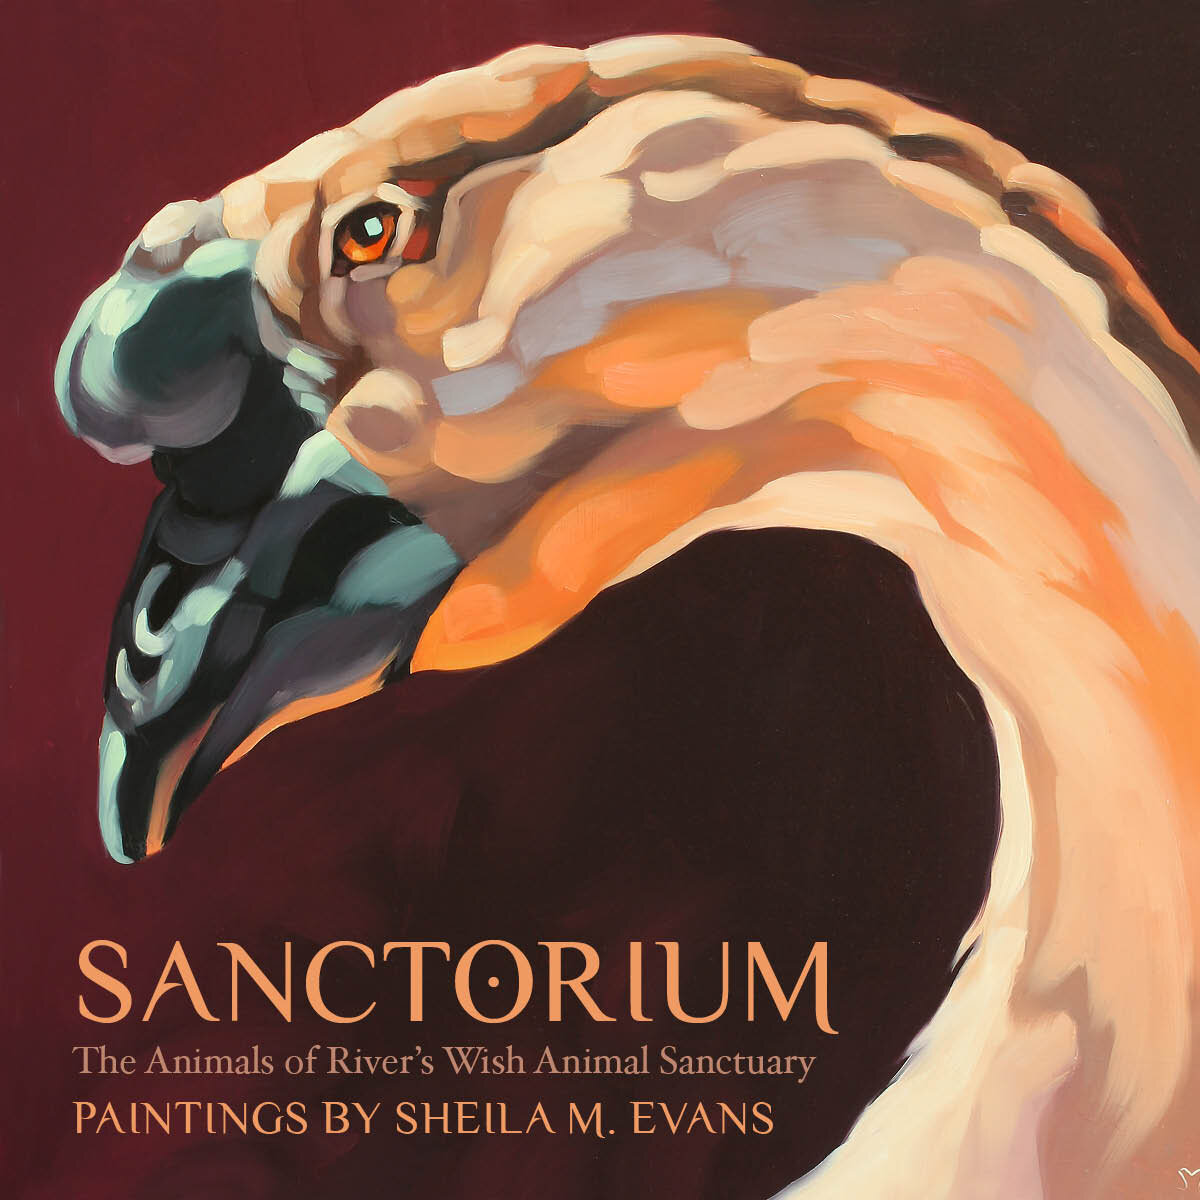 New! Sanctorium Show Books - Books will be available at the gallery the last three days of the show: Friday September 20, 5–8 p.m.; Saturday September 21, 1–4 p.m.; and at the closing reception, Friday September 27th, 5–8 p.m.Book includes all forty images from the show along with the animals' stories.Price is $30 (including tax). Five dollars from each book sale will be donated to River's Wish.Books can also be purchased online here.